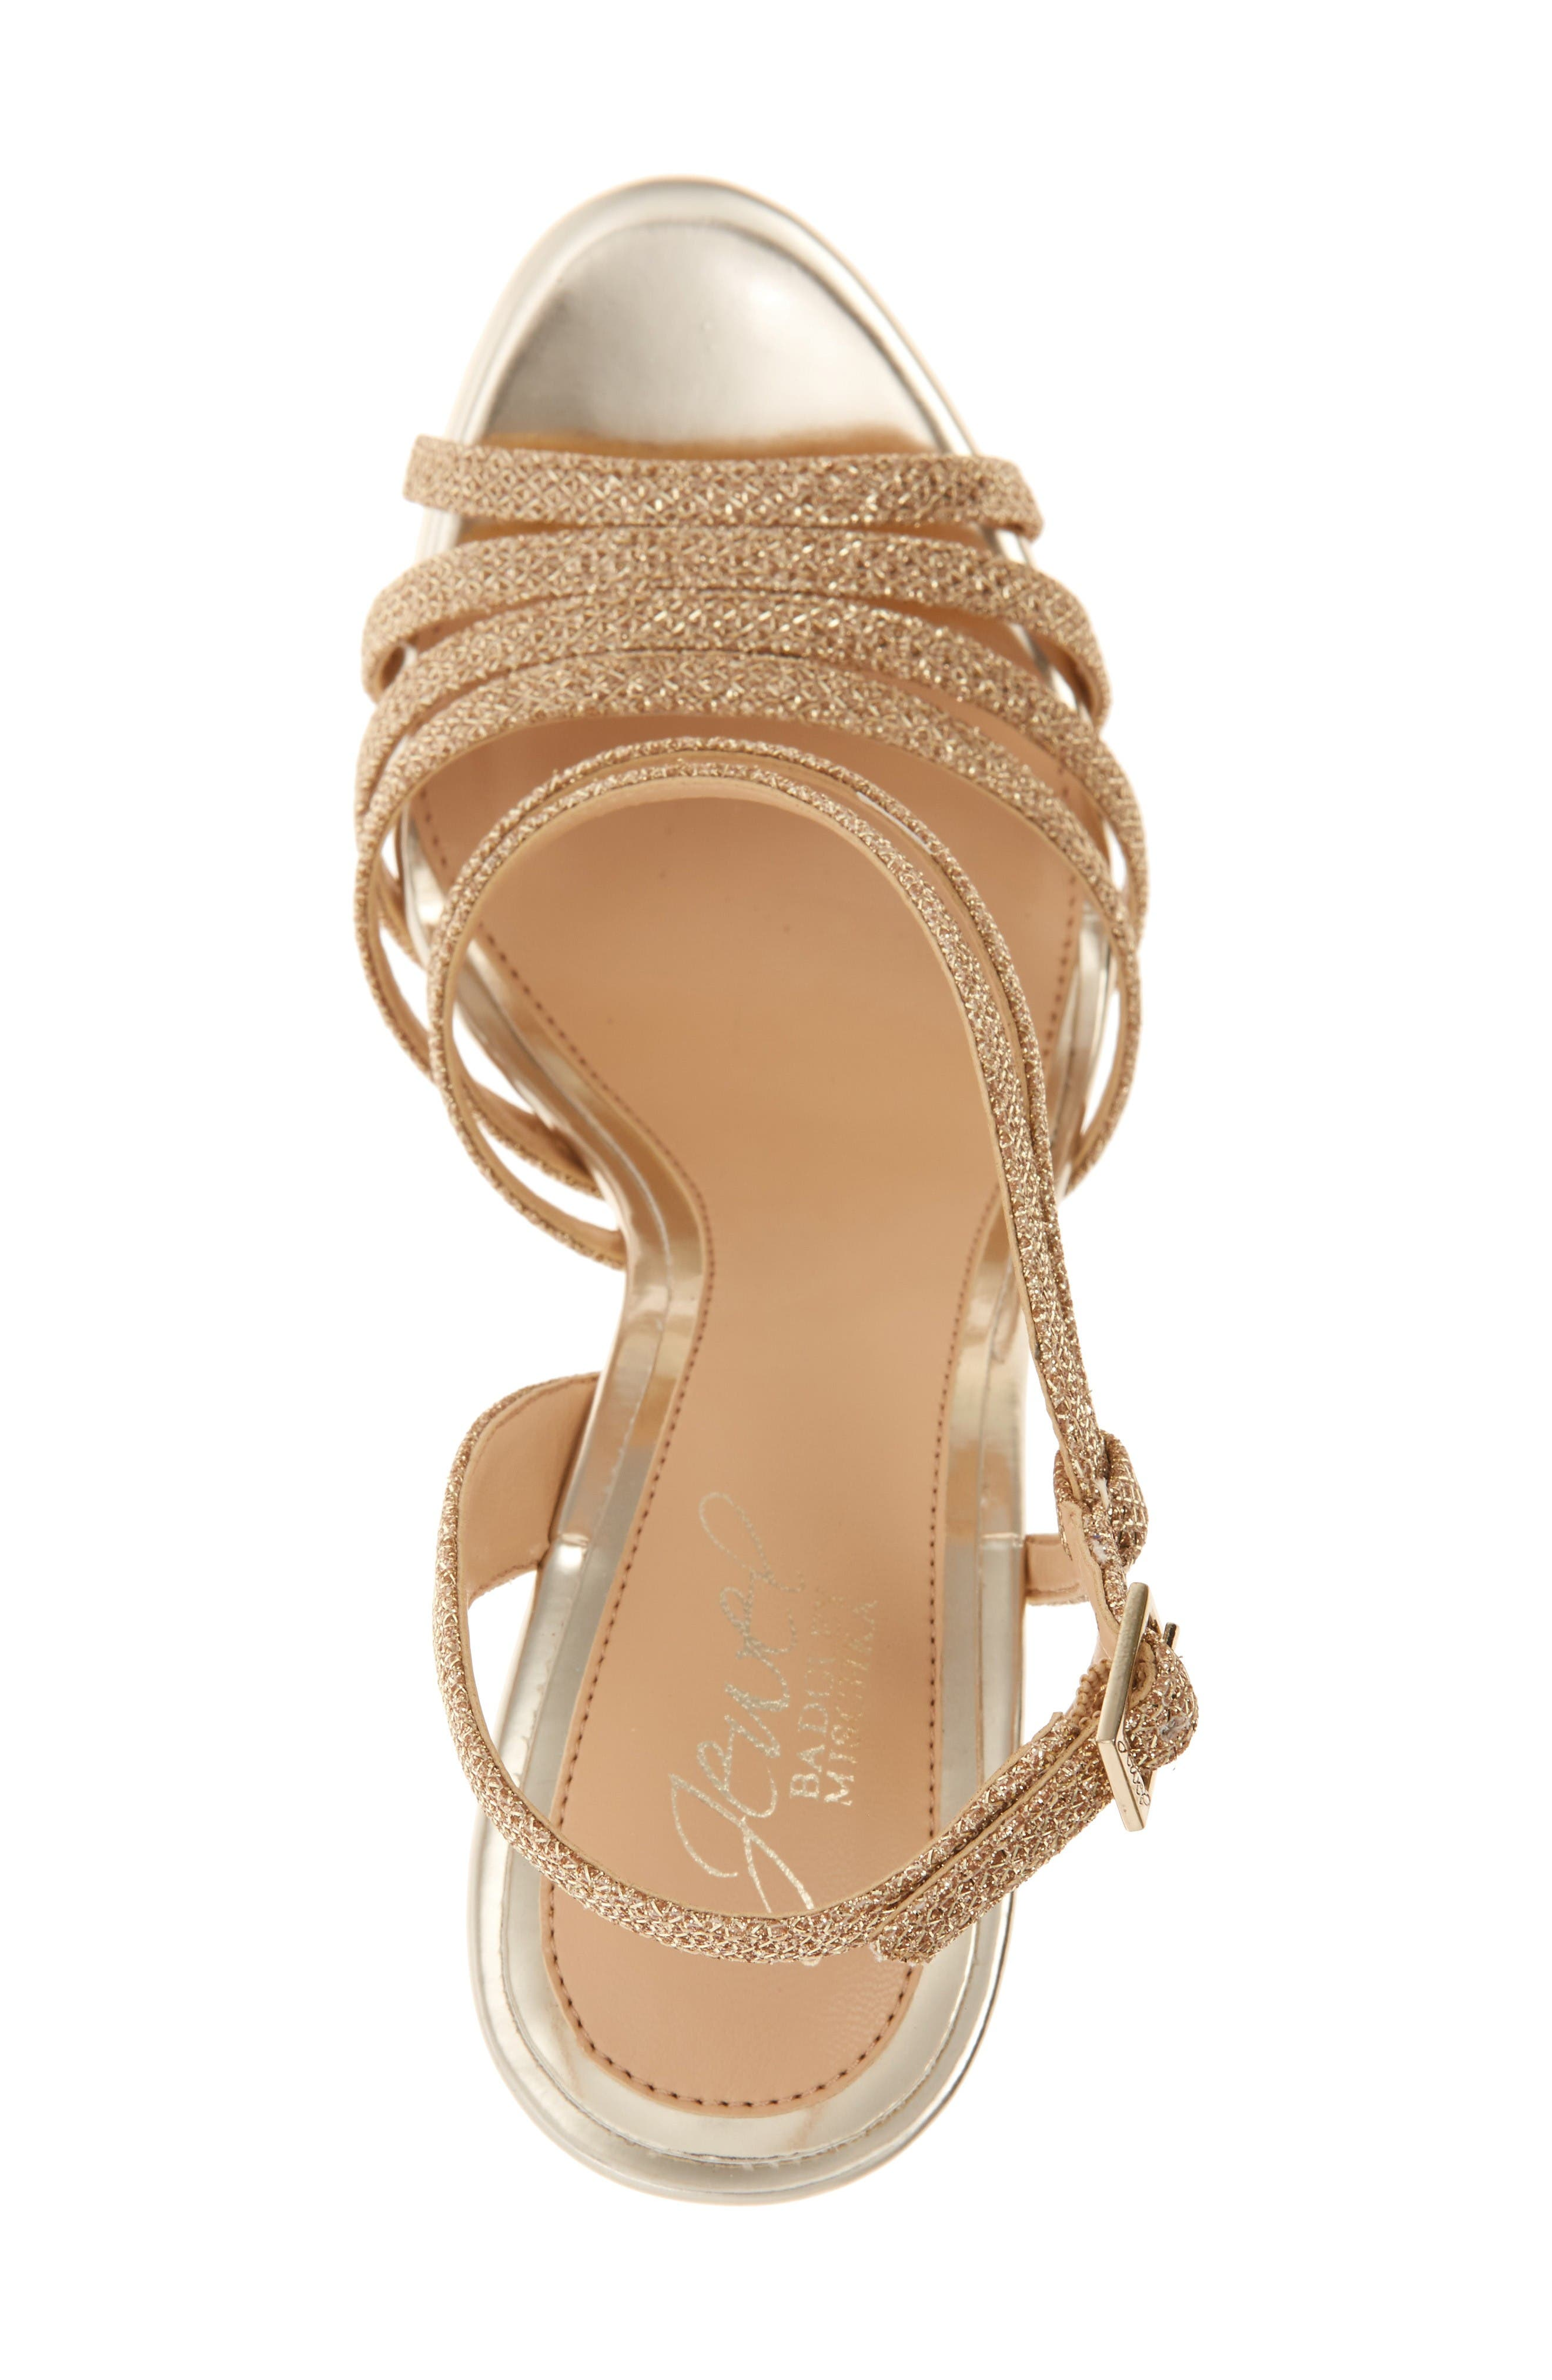 Humble Strappy Sandal,                             Alternate thumbnail 3, color,                             Gold Glitter Fabric